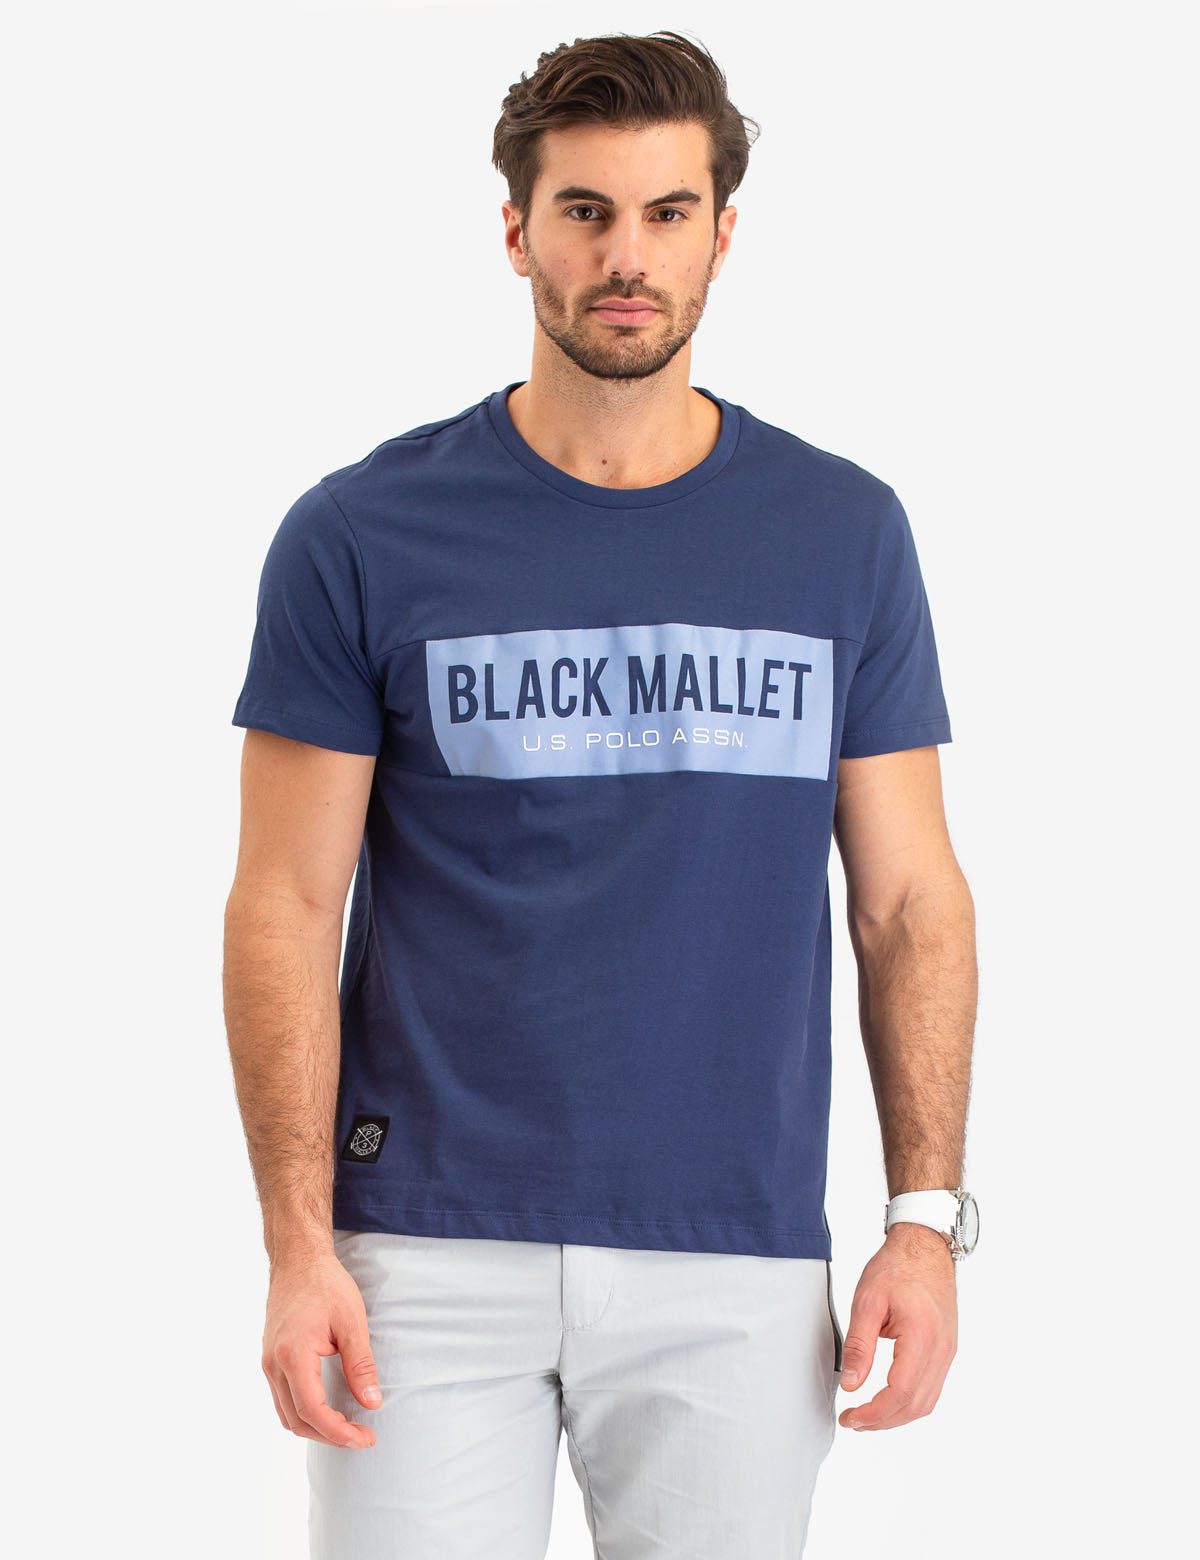 BLACK MALLET CHEST LOGO T-SHIRT